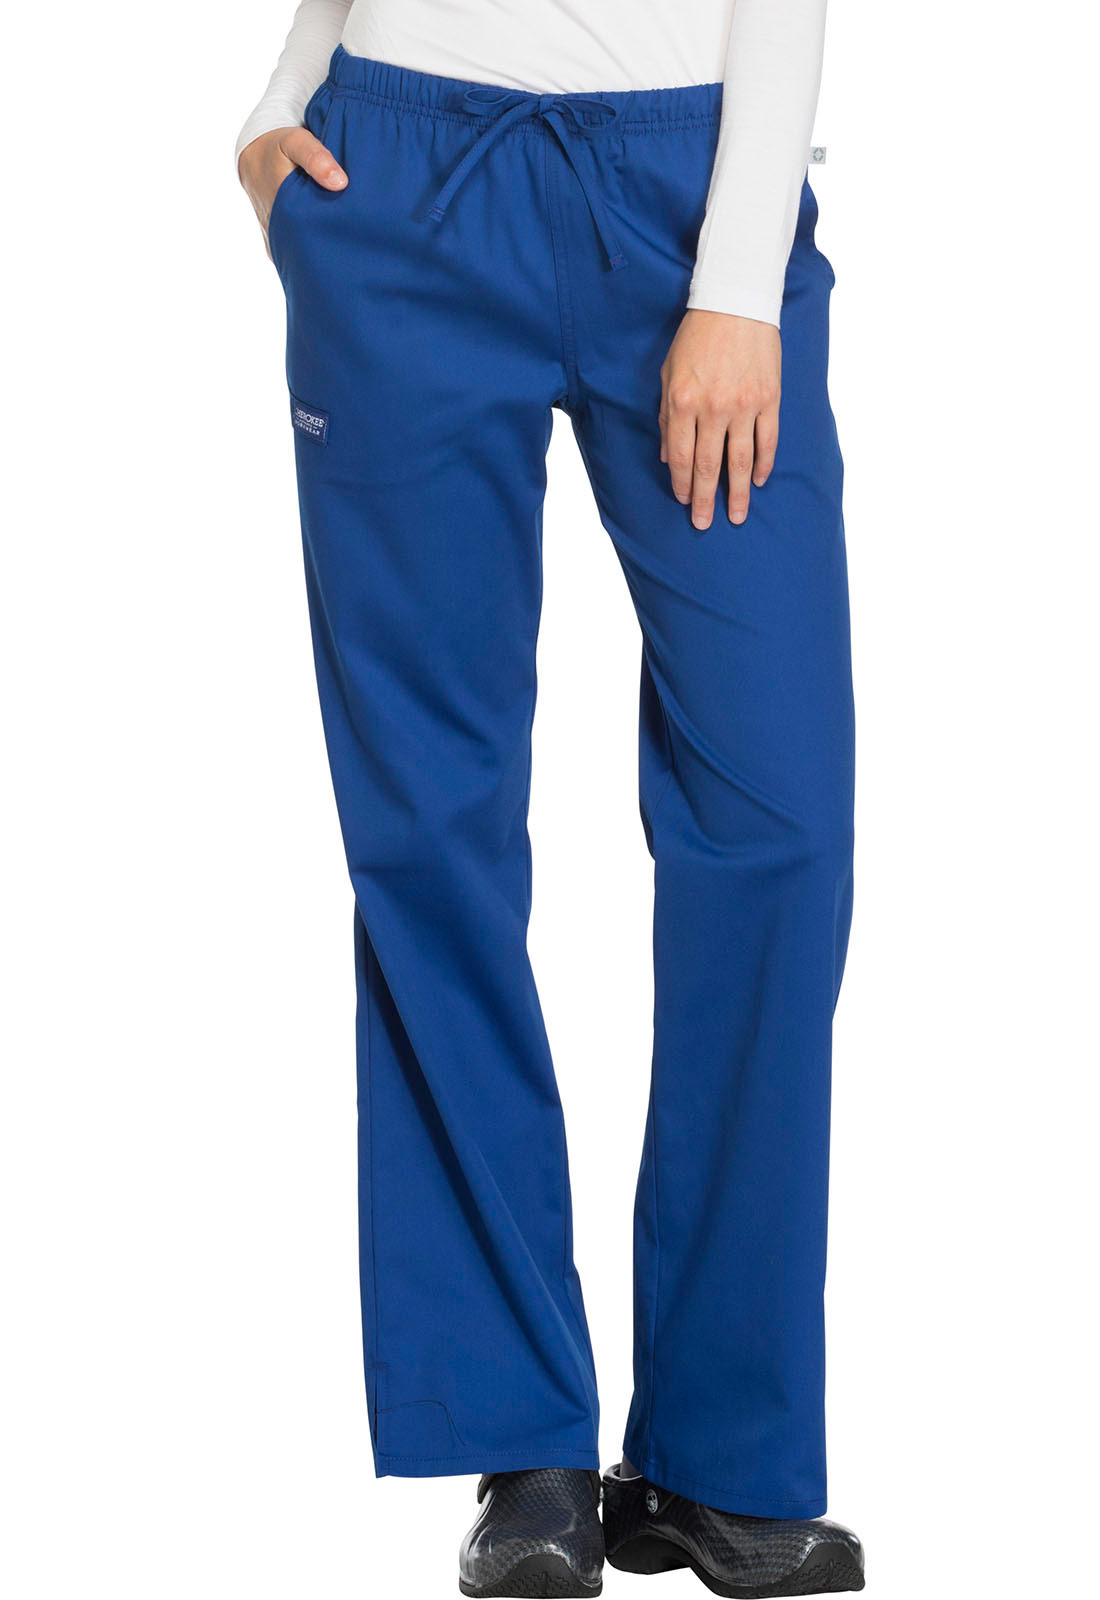 Mid-Rise Moderate Flare Drawstring Pant w/ Antimicrobial